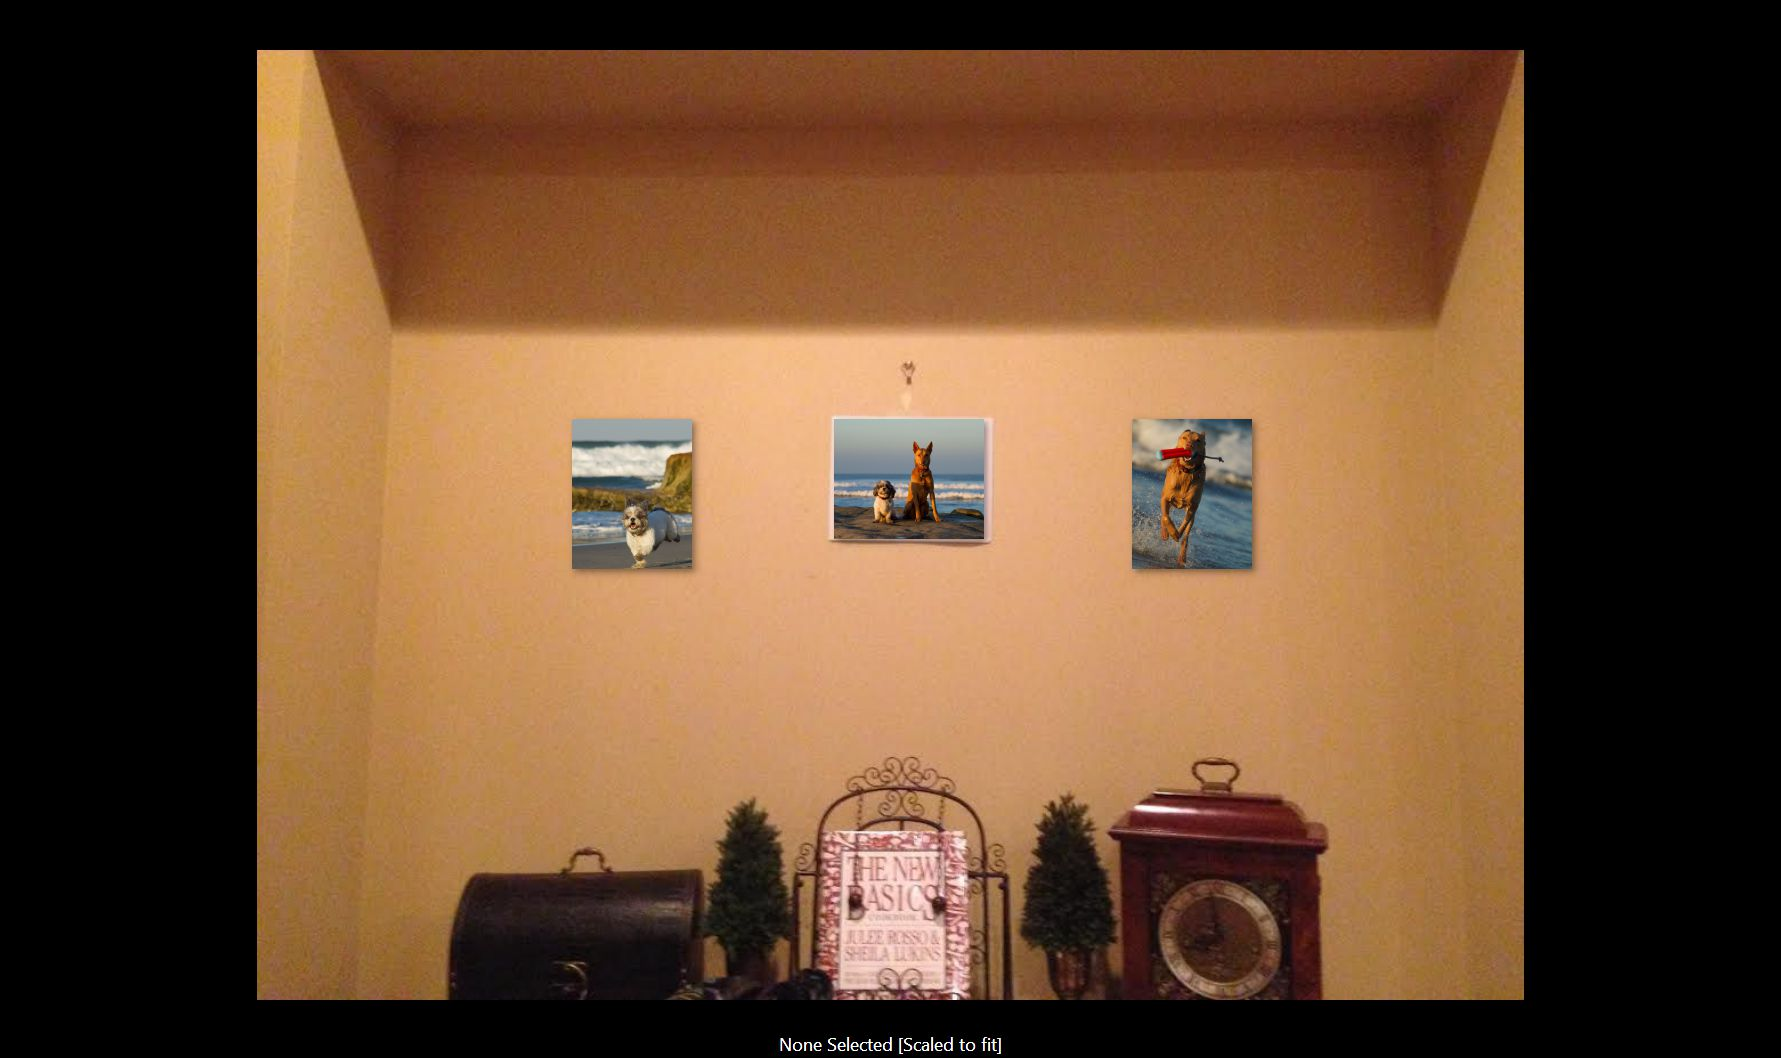 She assumed three 8x10 prints would look good on this wall so we simulated it. She was surprised to see they're just too small.